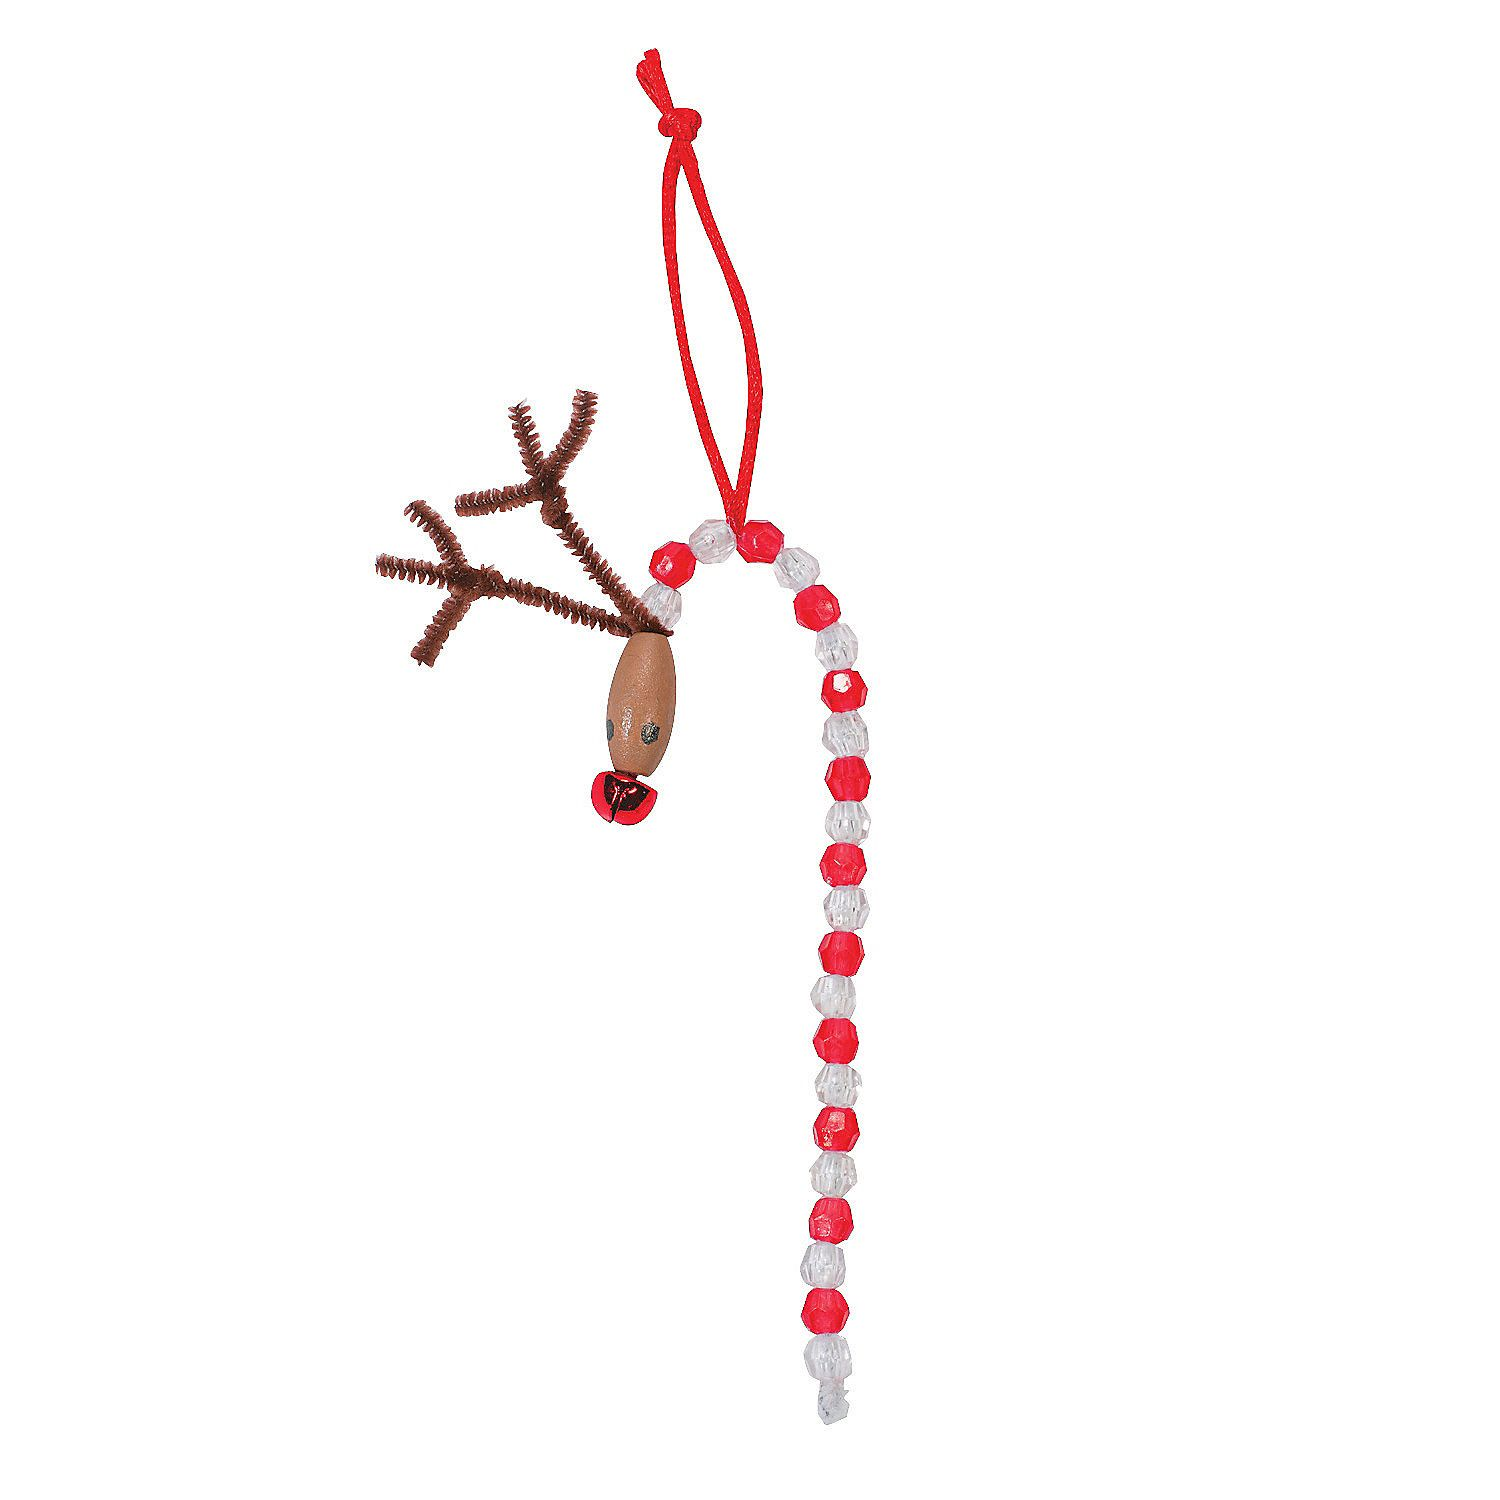 Beaded Reindeer Ornament Craft Kit  Orientaltradingcom